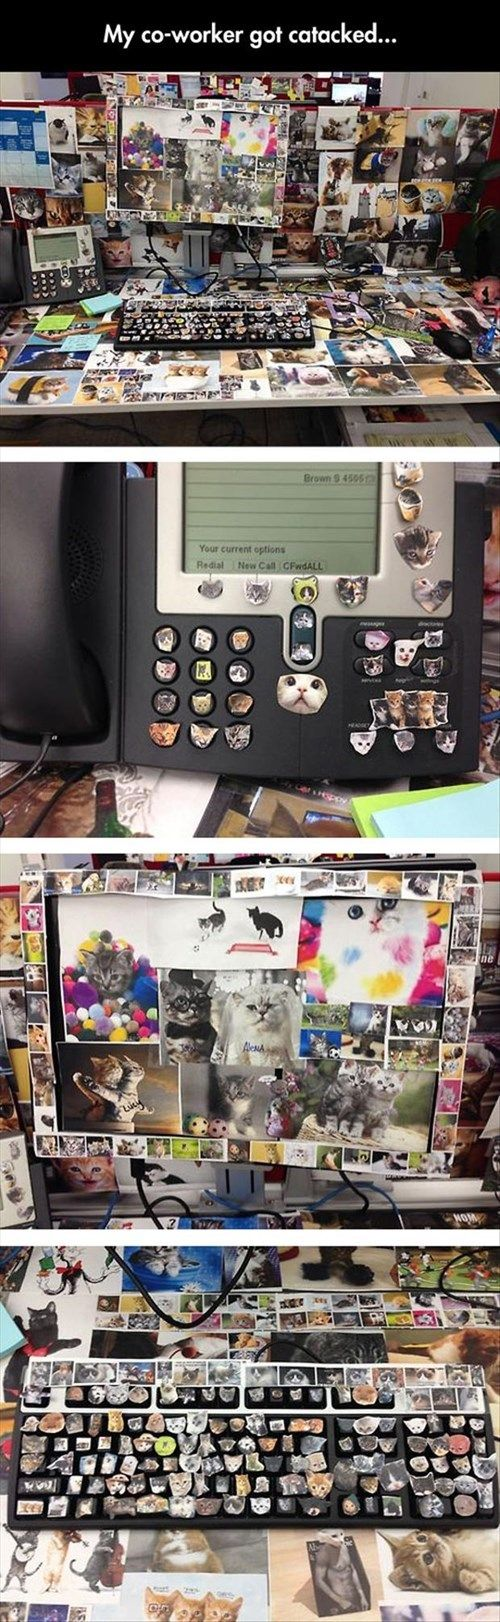 How many Cute Overload calendars were sacrificed to make this awesomely squee office prank? (via cameranerd)